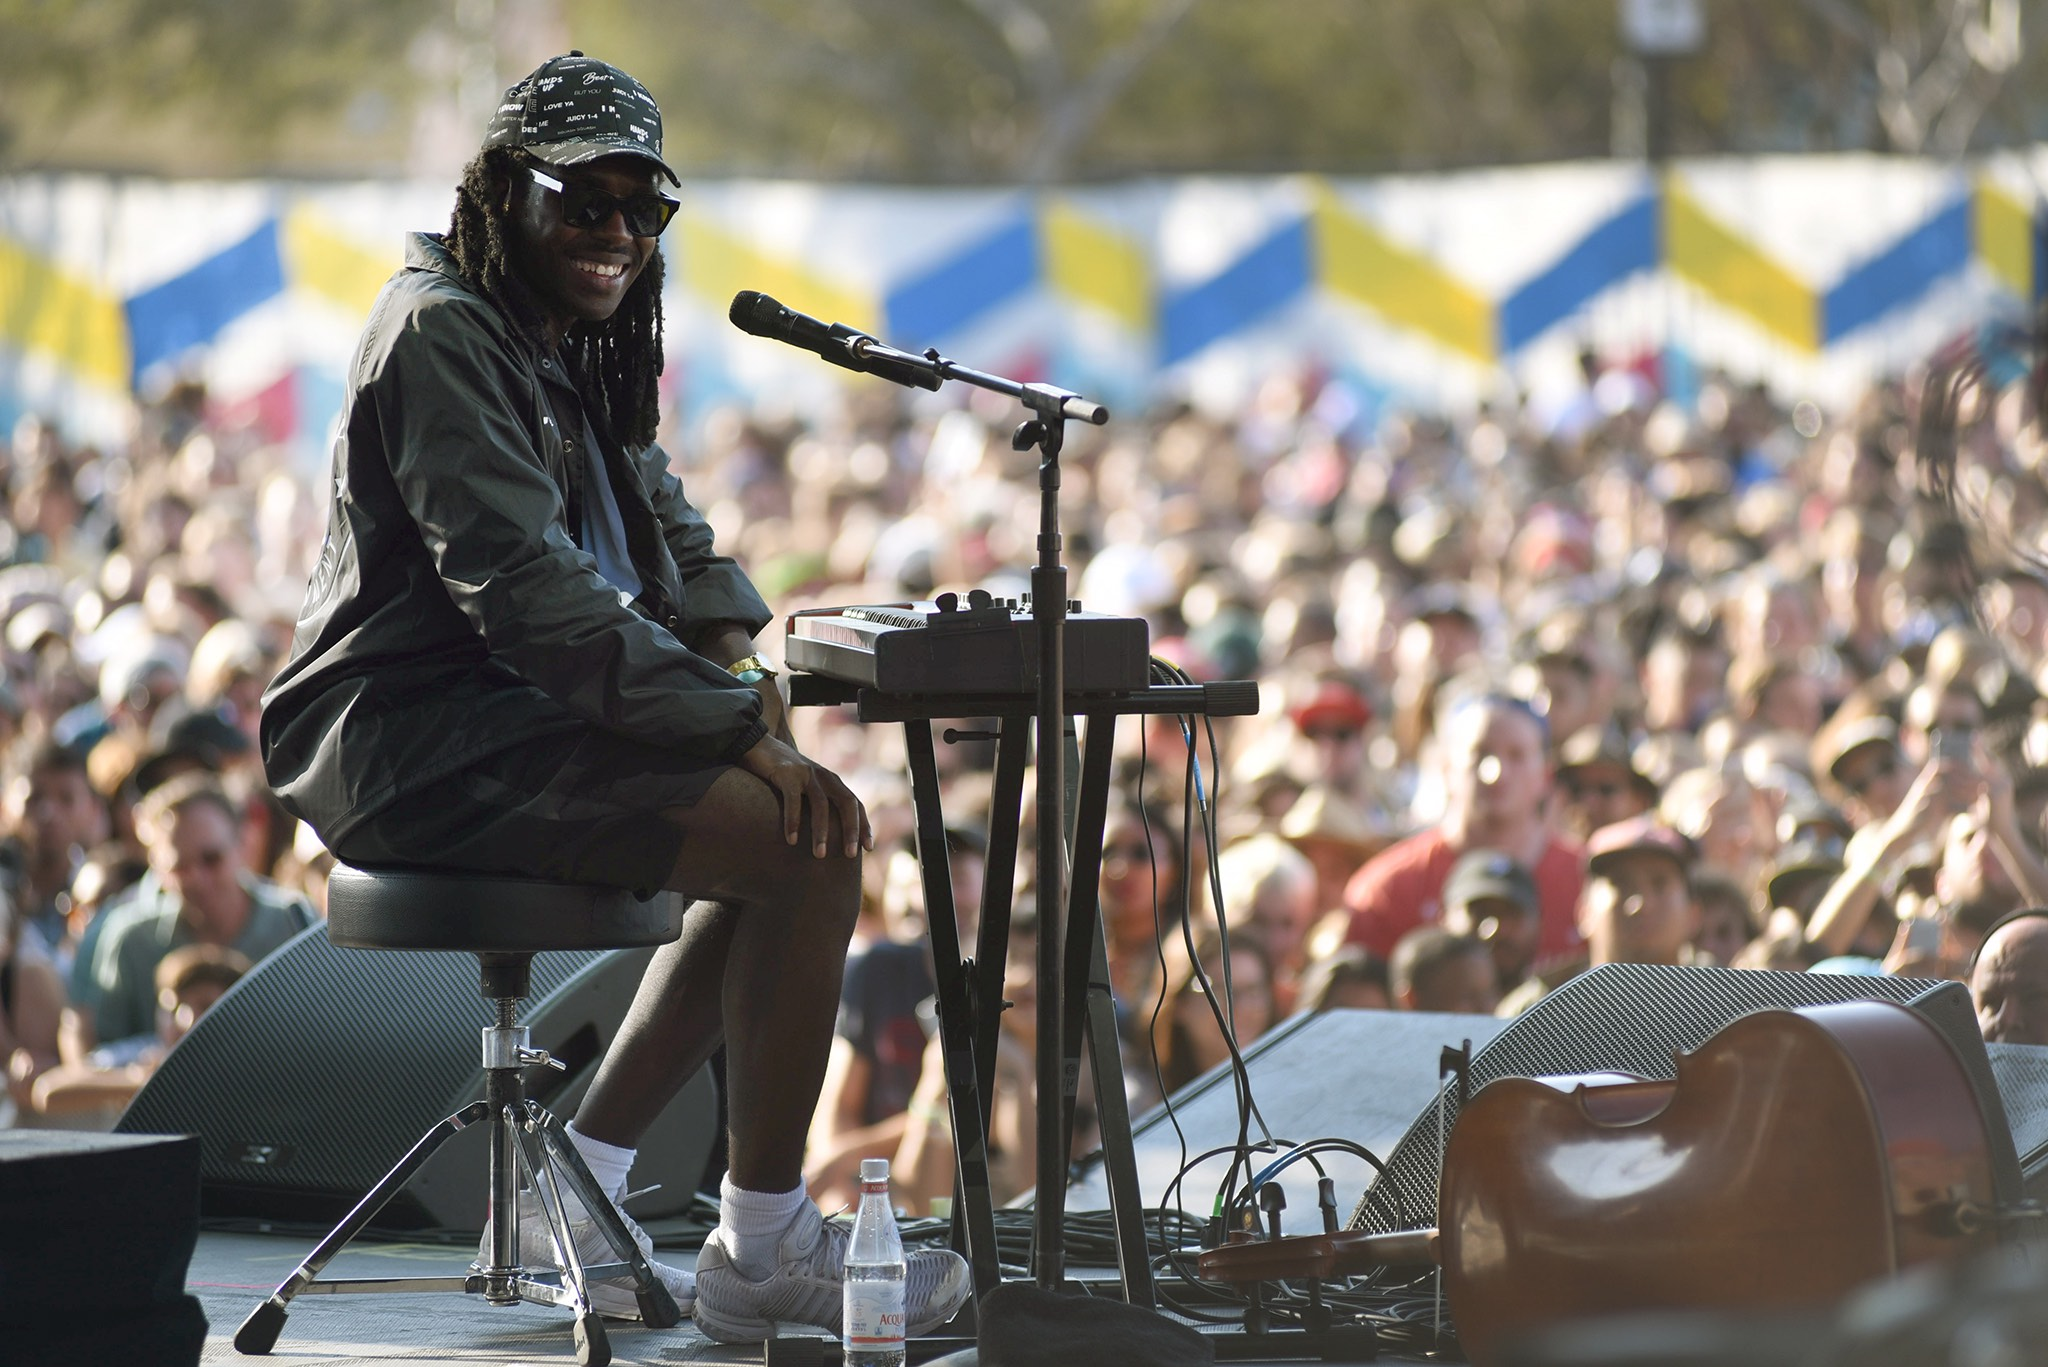 Blood Orange 8/28/16 @ Fuck Yeah Fest. Photo by Jose Negrete for FYF Fest. Used With Permission By www.BlurredCulture.com.